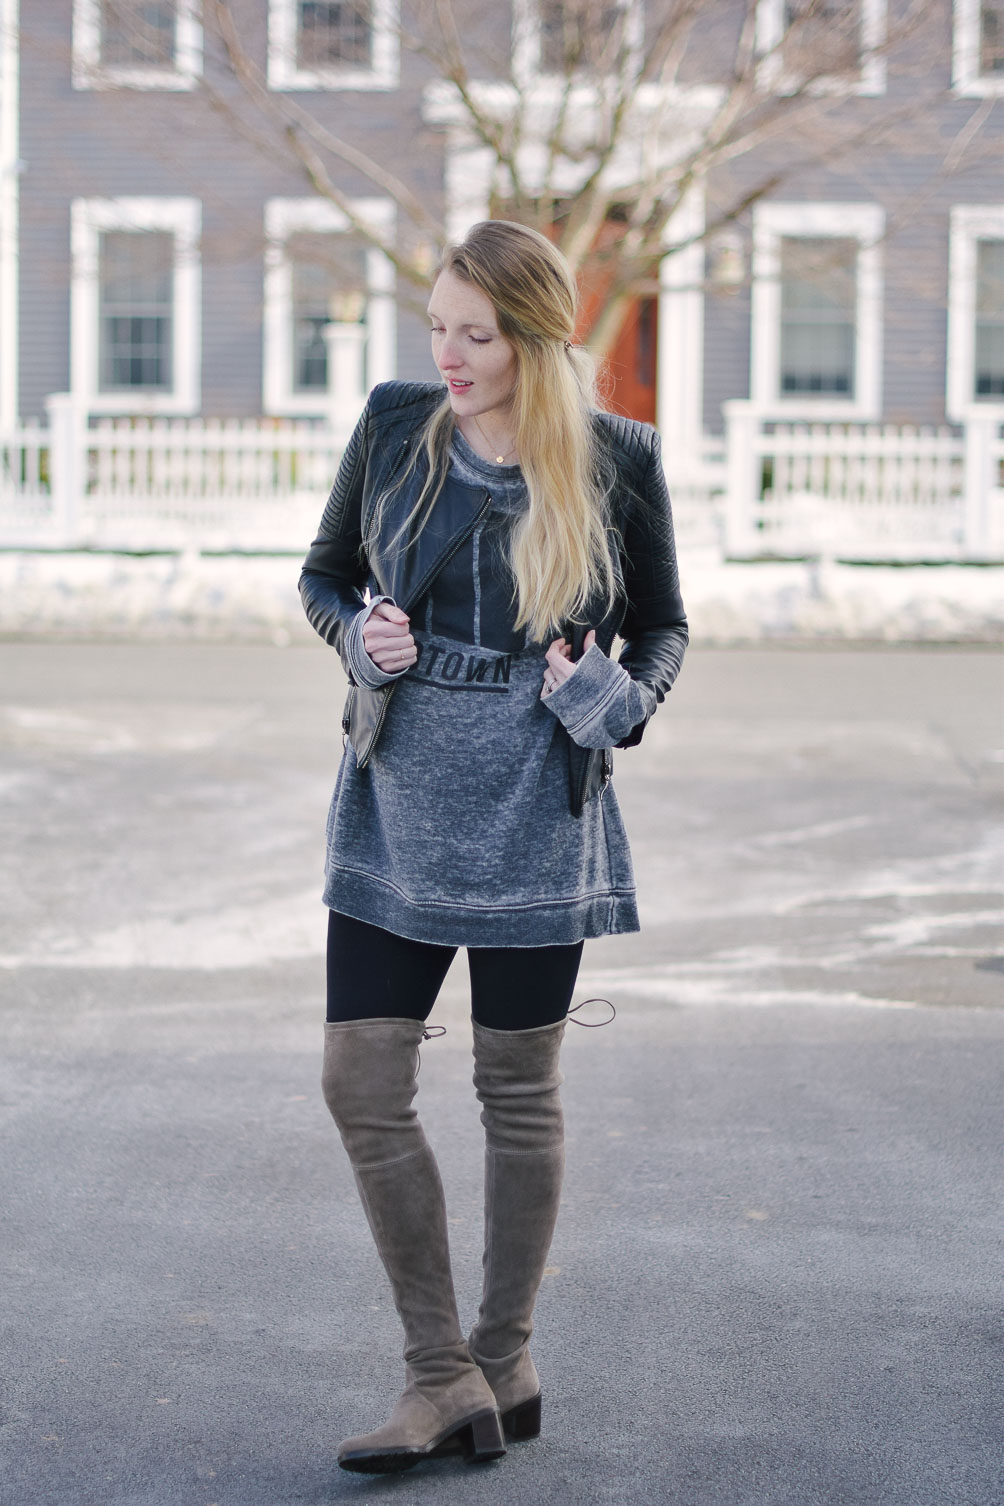 styling an oversized sweatshirt for casual maternity outfit inspiration